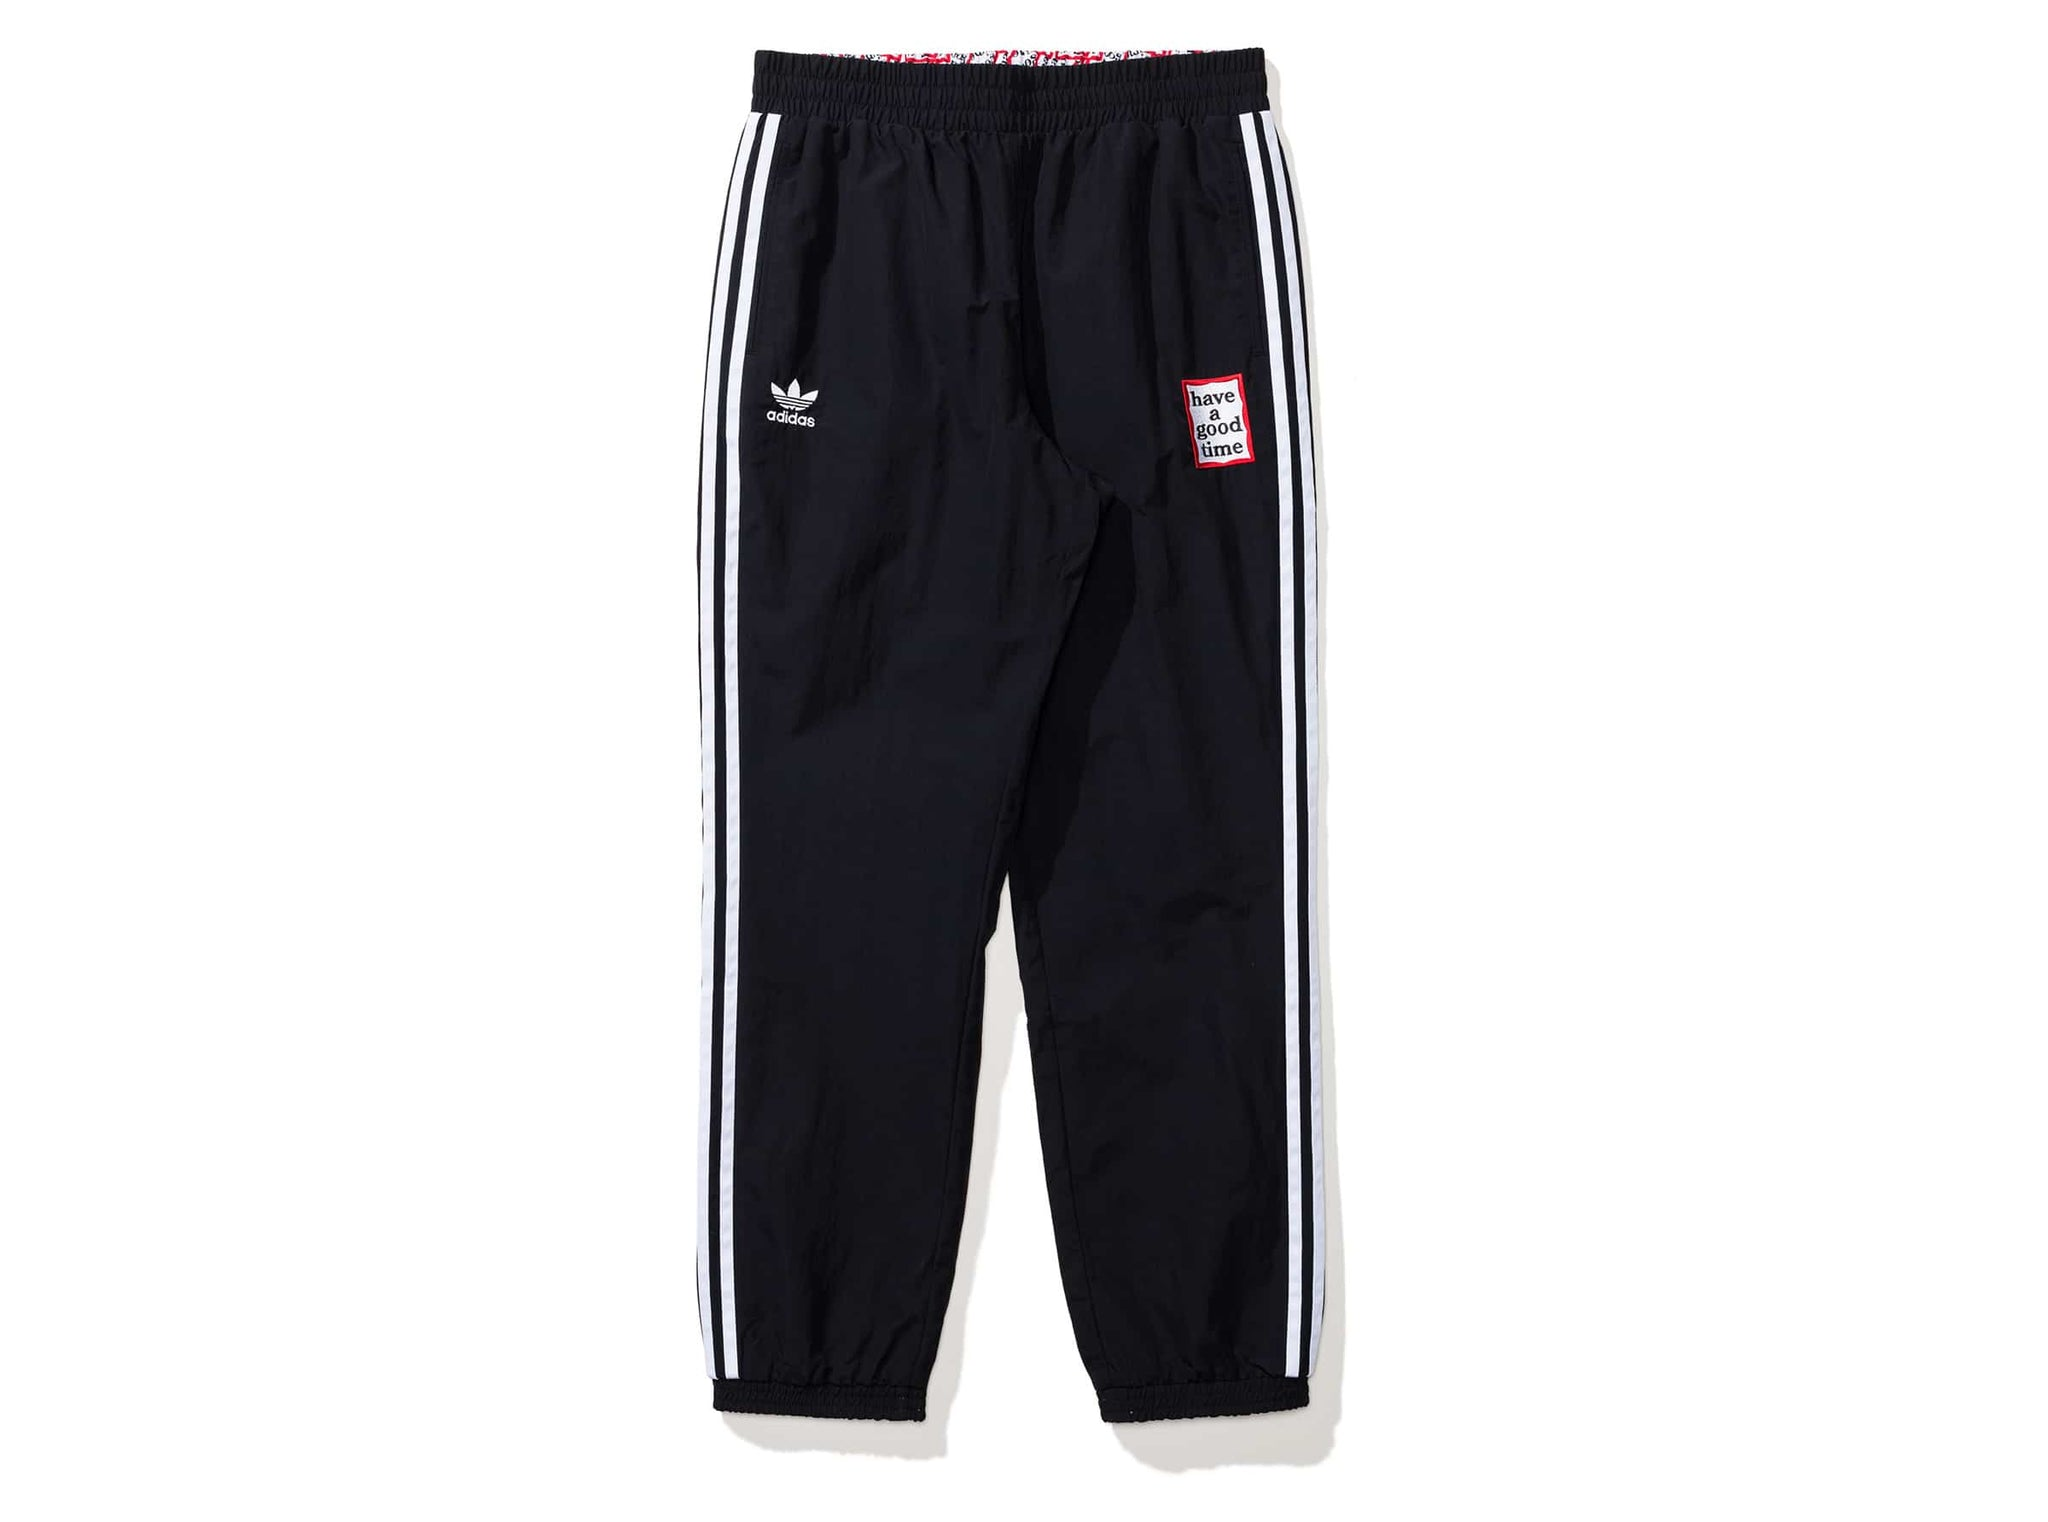 HAGT REV TRACK PANTS - BLACK